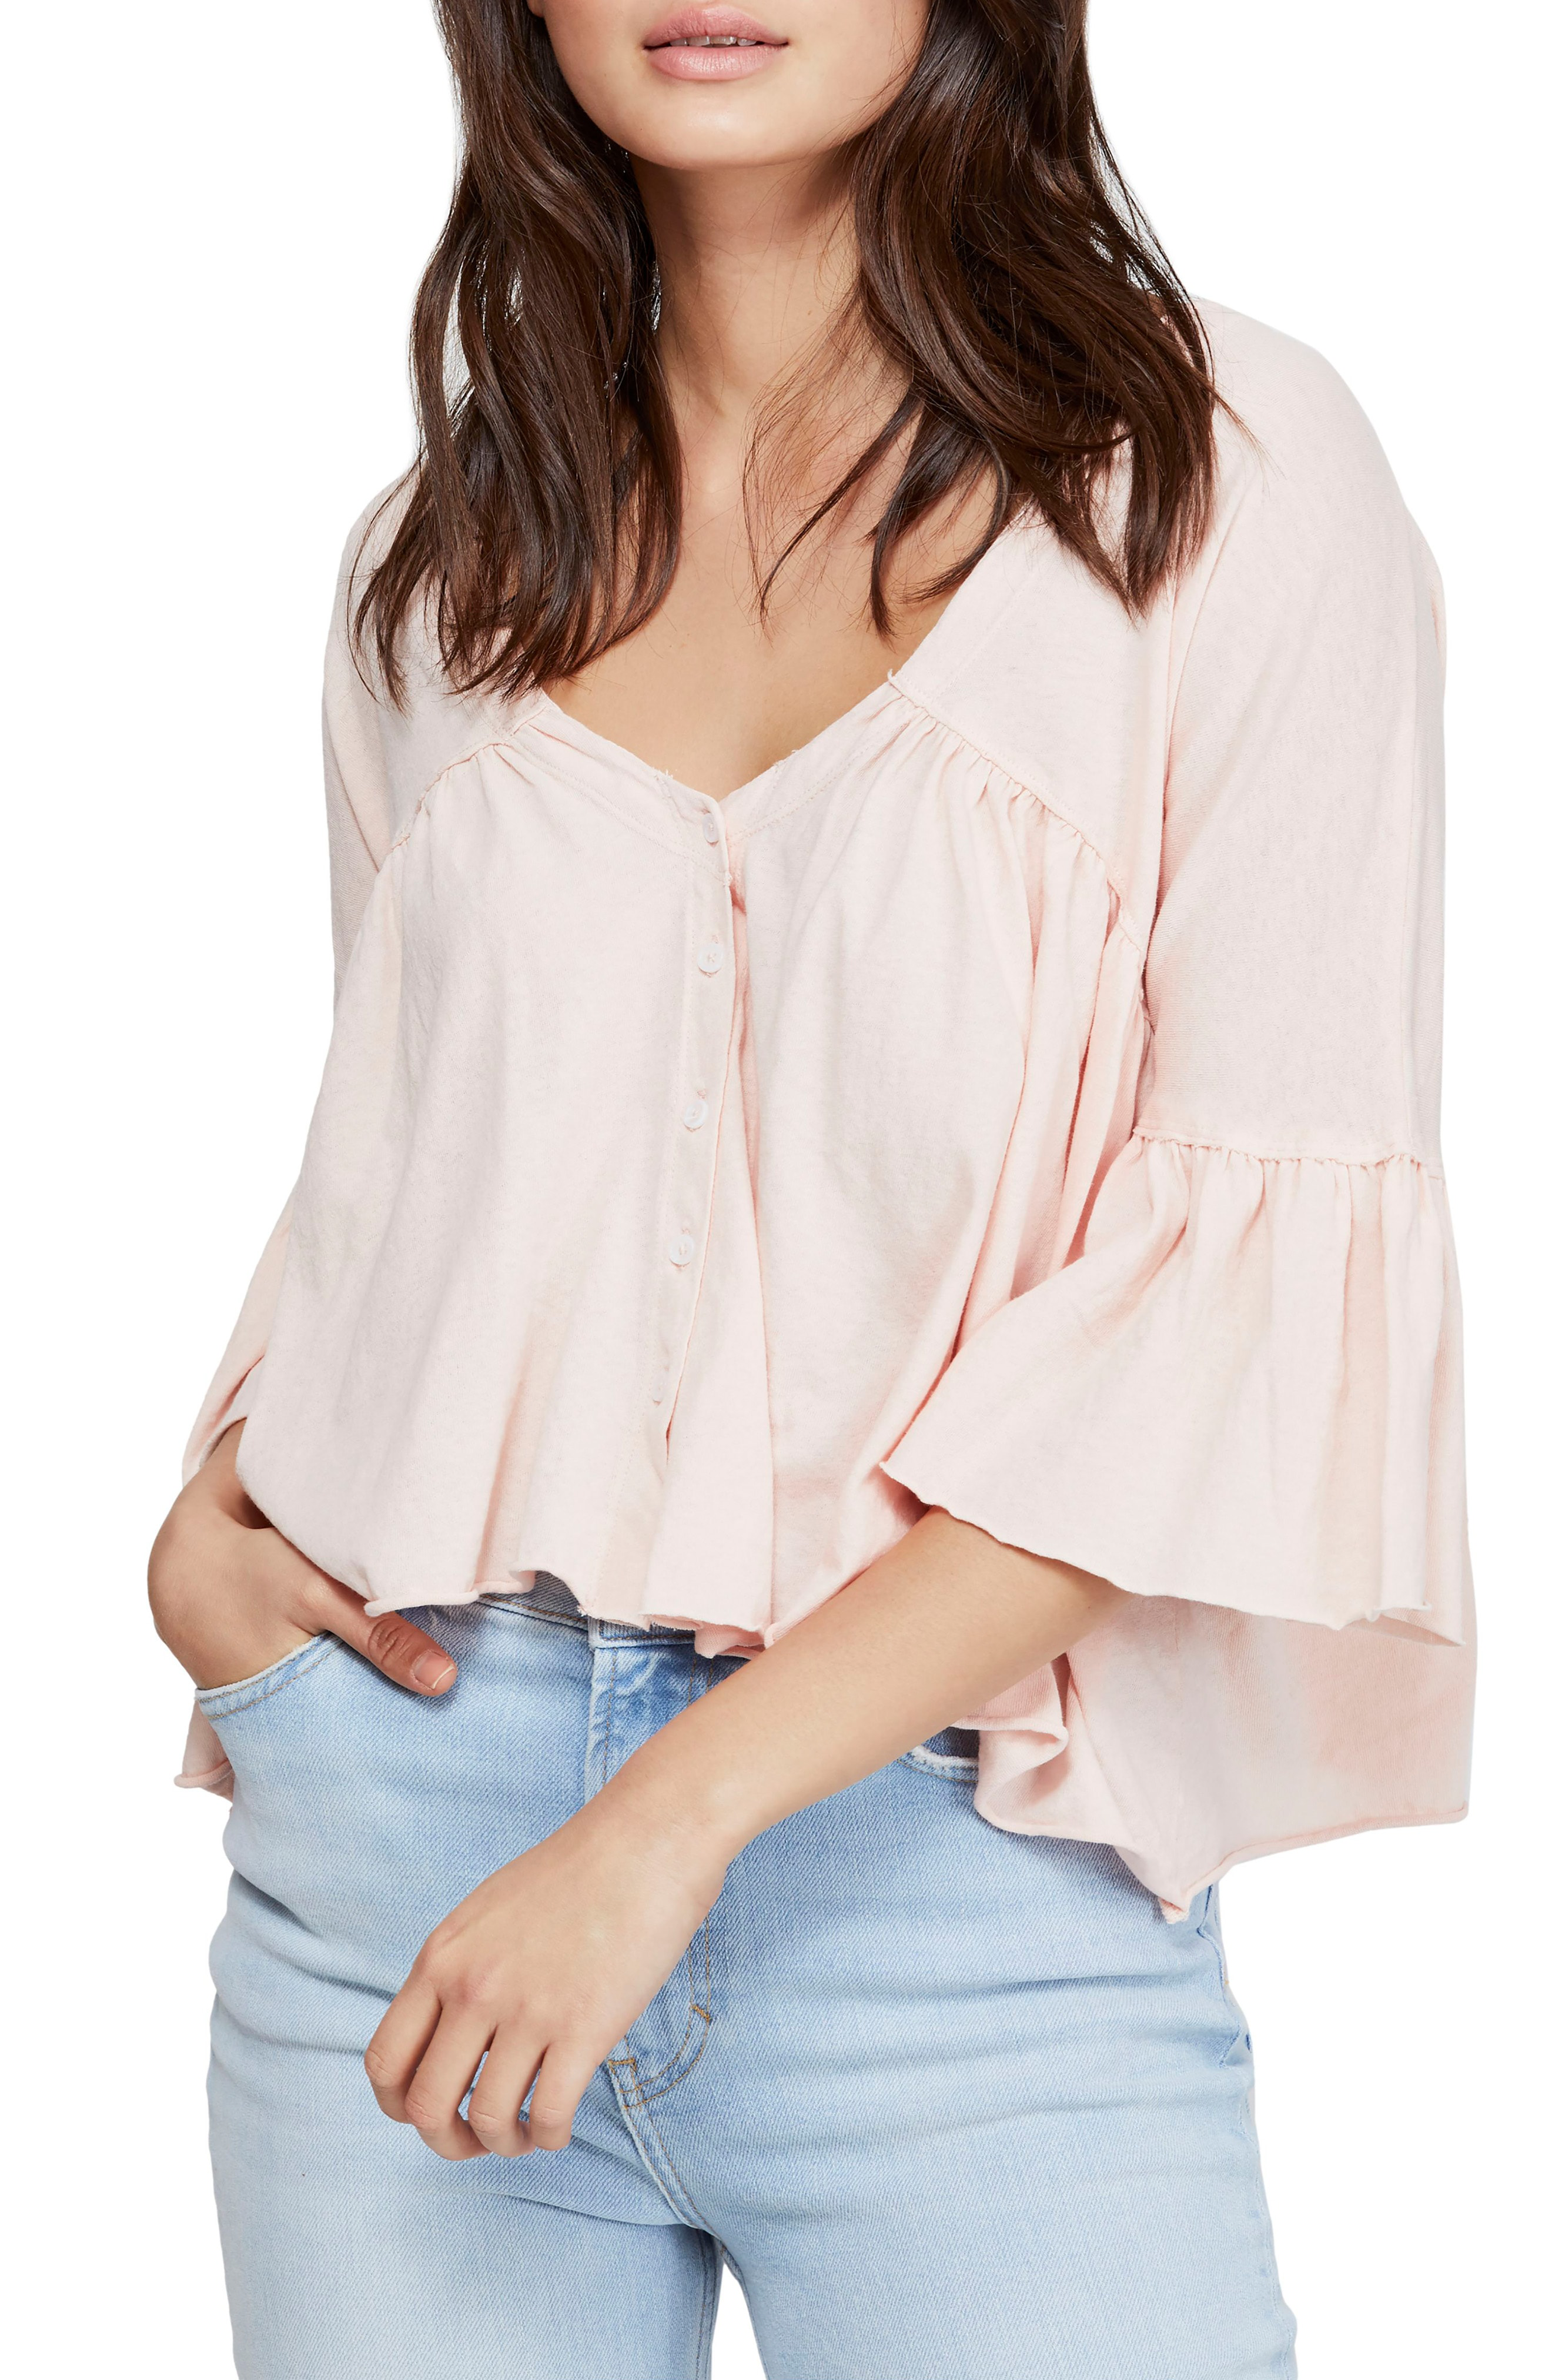 Details about  /Free People Women/'s Sweet Little Tee  X-Small Ivory